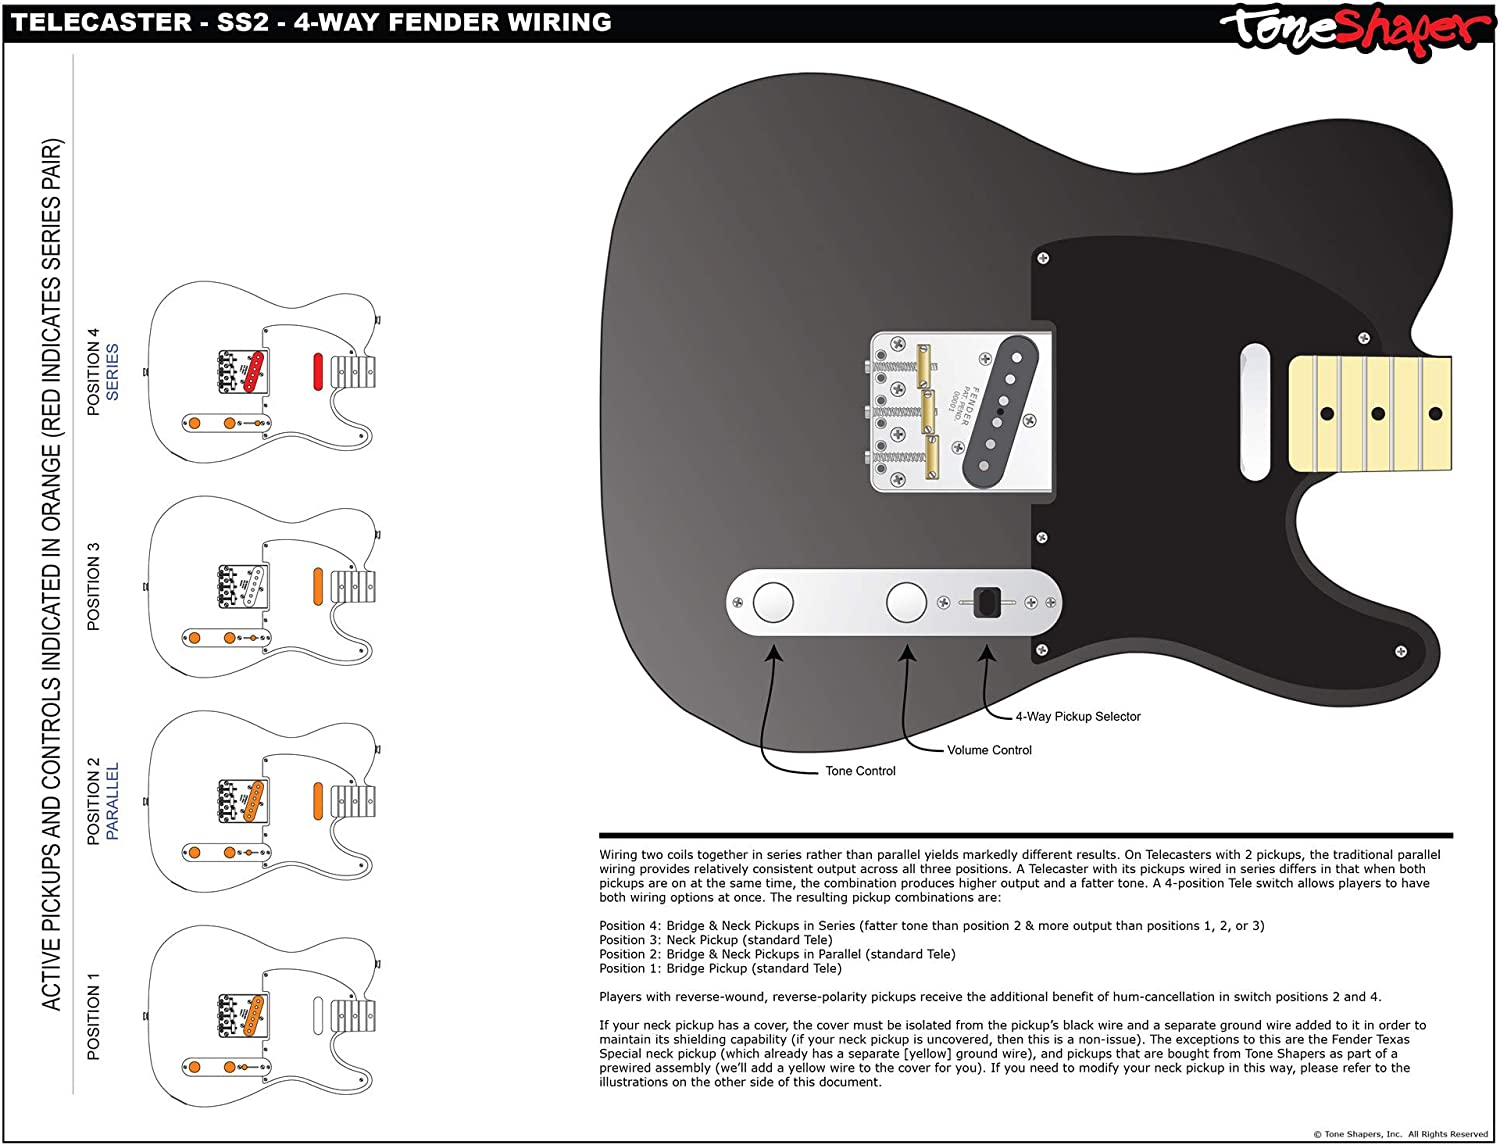 Amazon.com: ToneShaper Guitar Wiring Kit, For Fender Telecaster, SS2 (4-Way  Fender Wiring): Musical InstrumentsAmazon.com